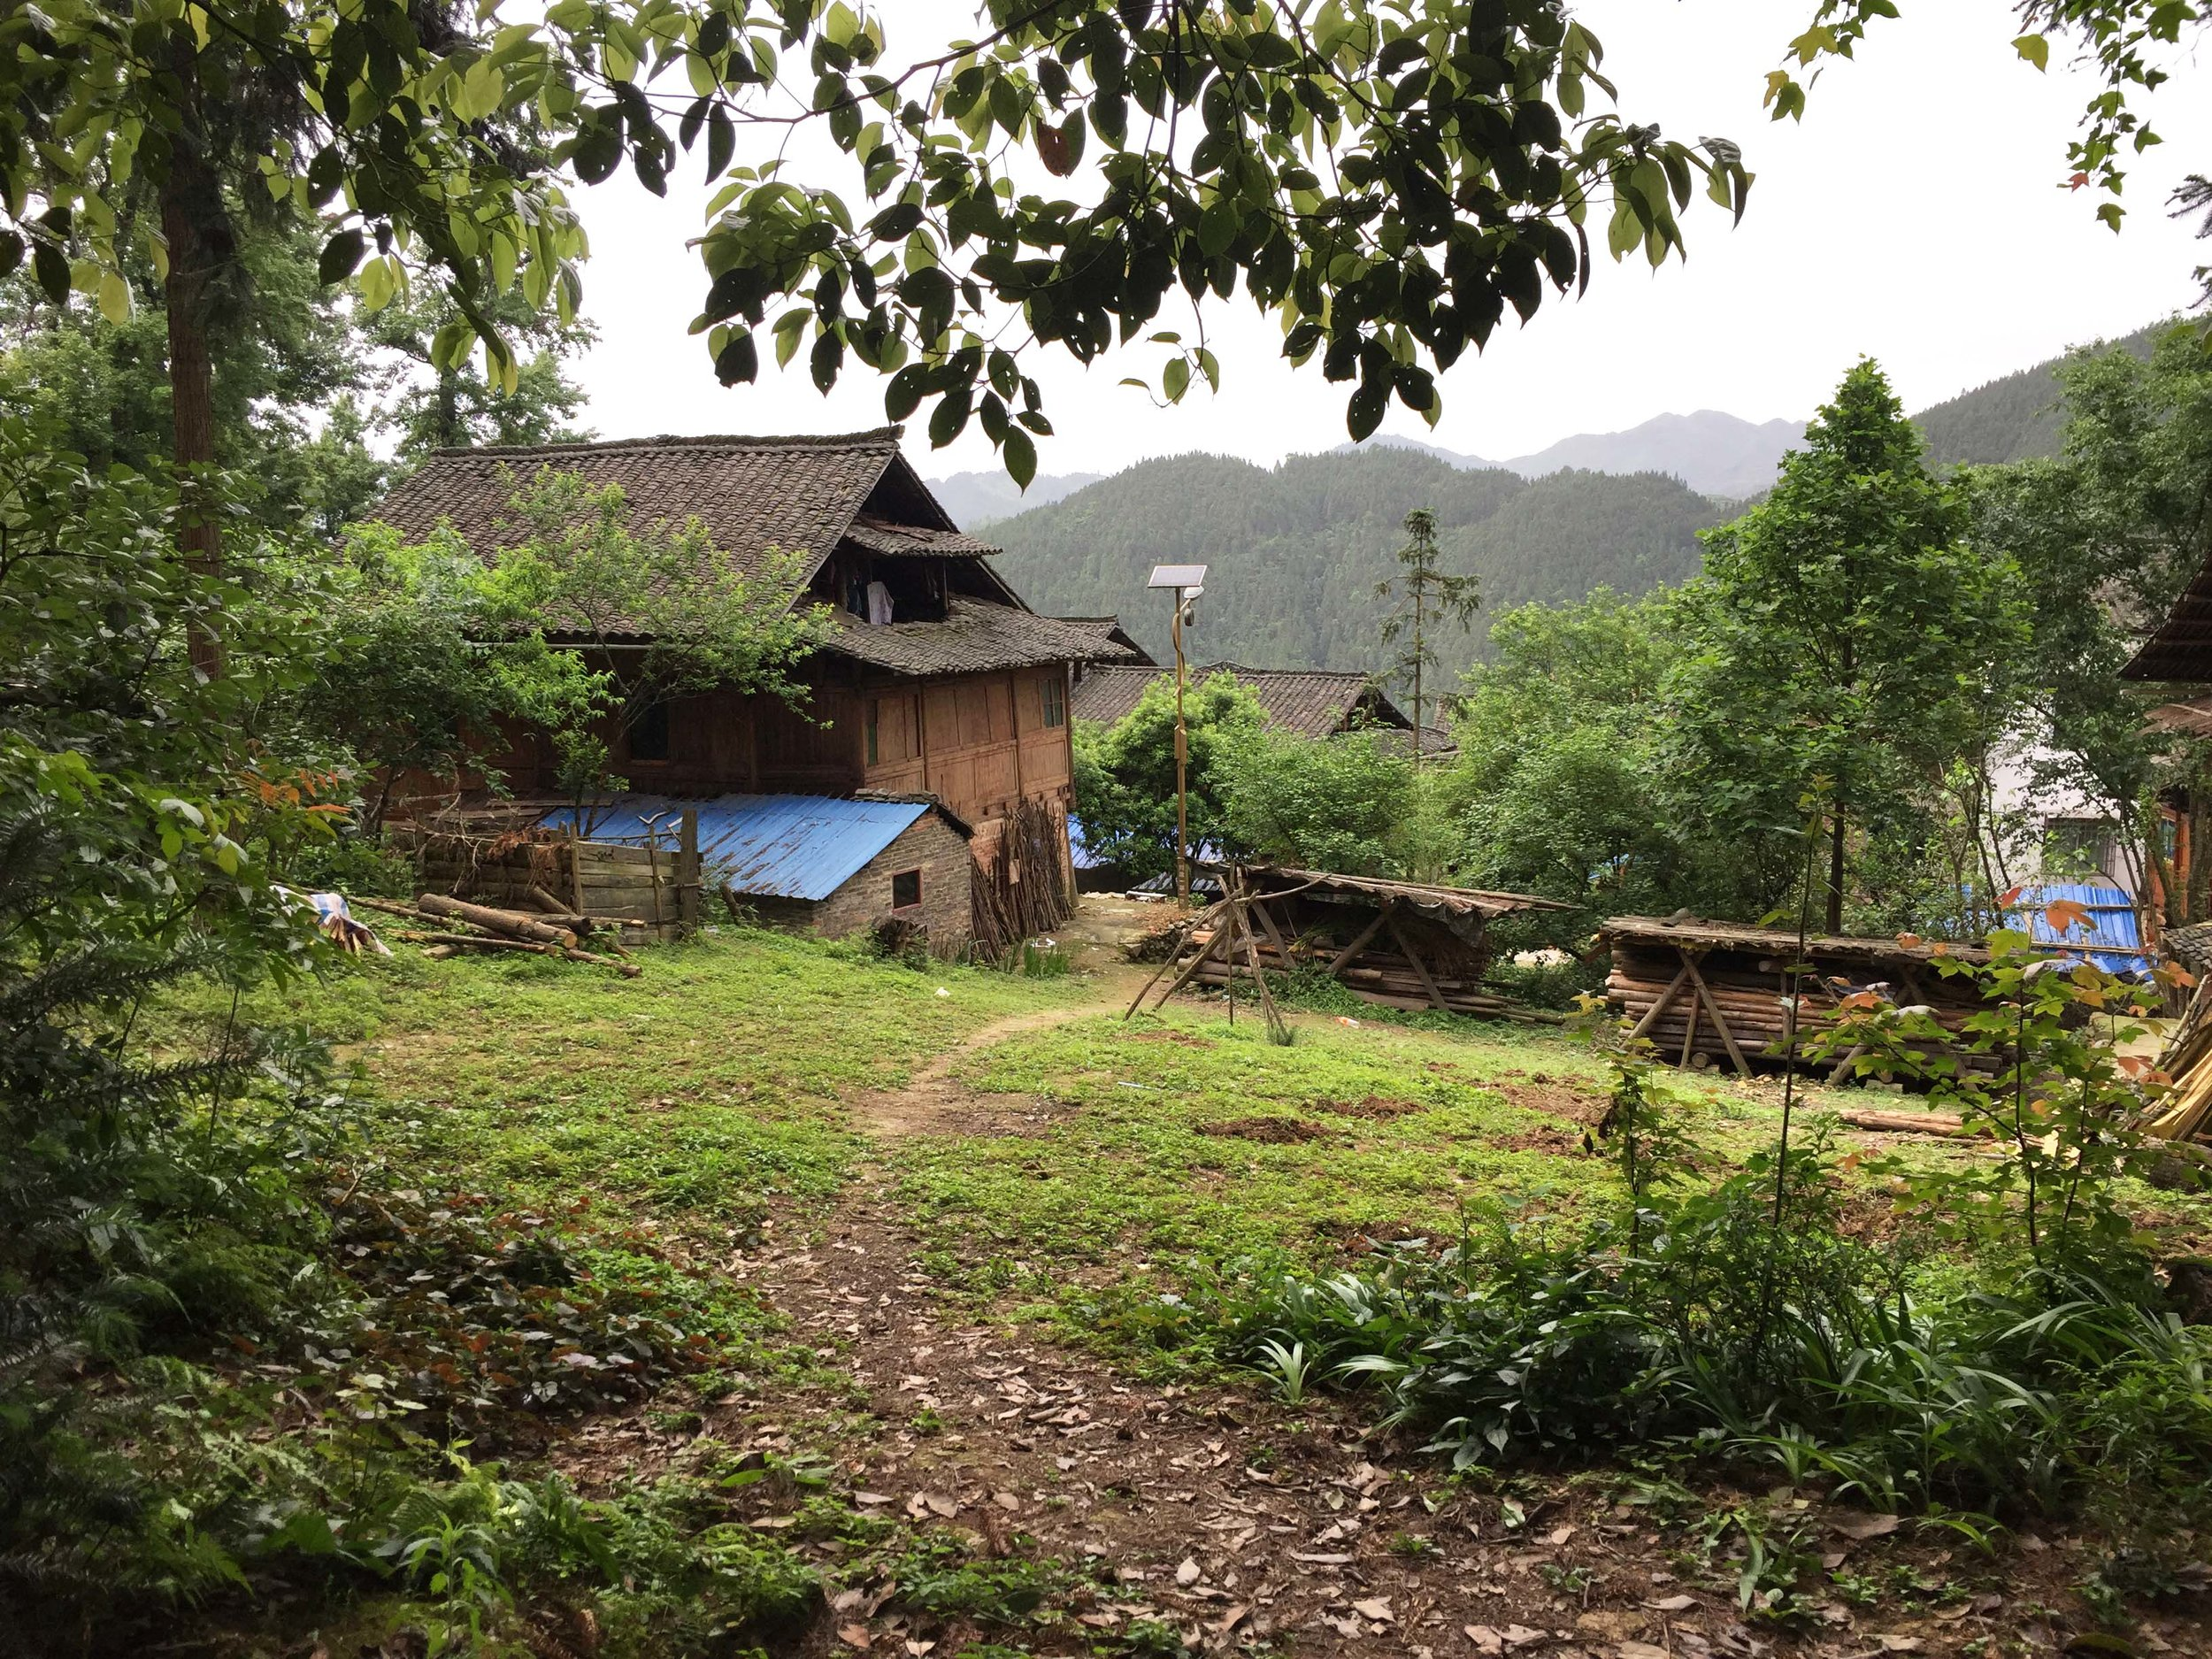 Zhanliu village. Such an idyllic view